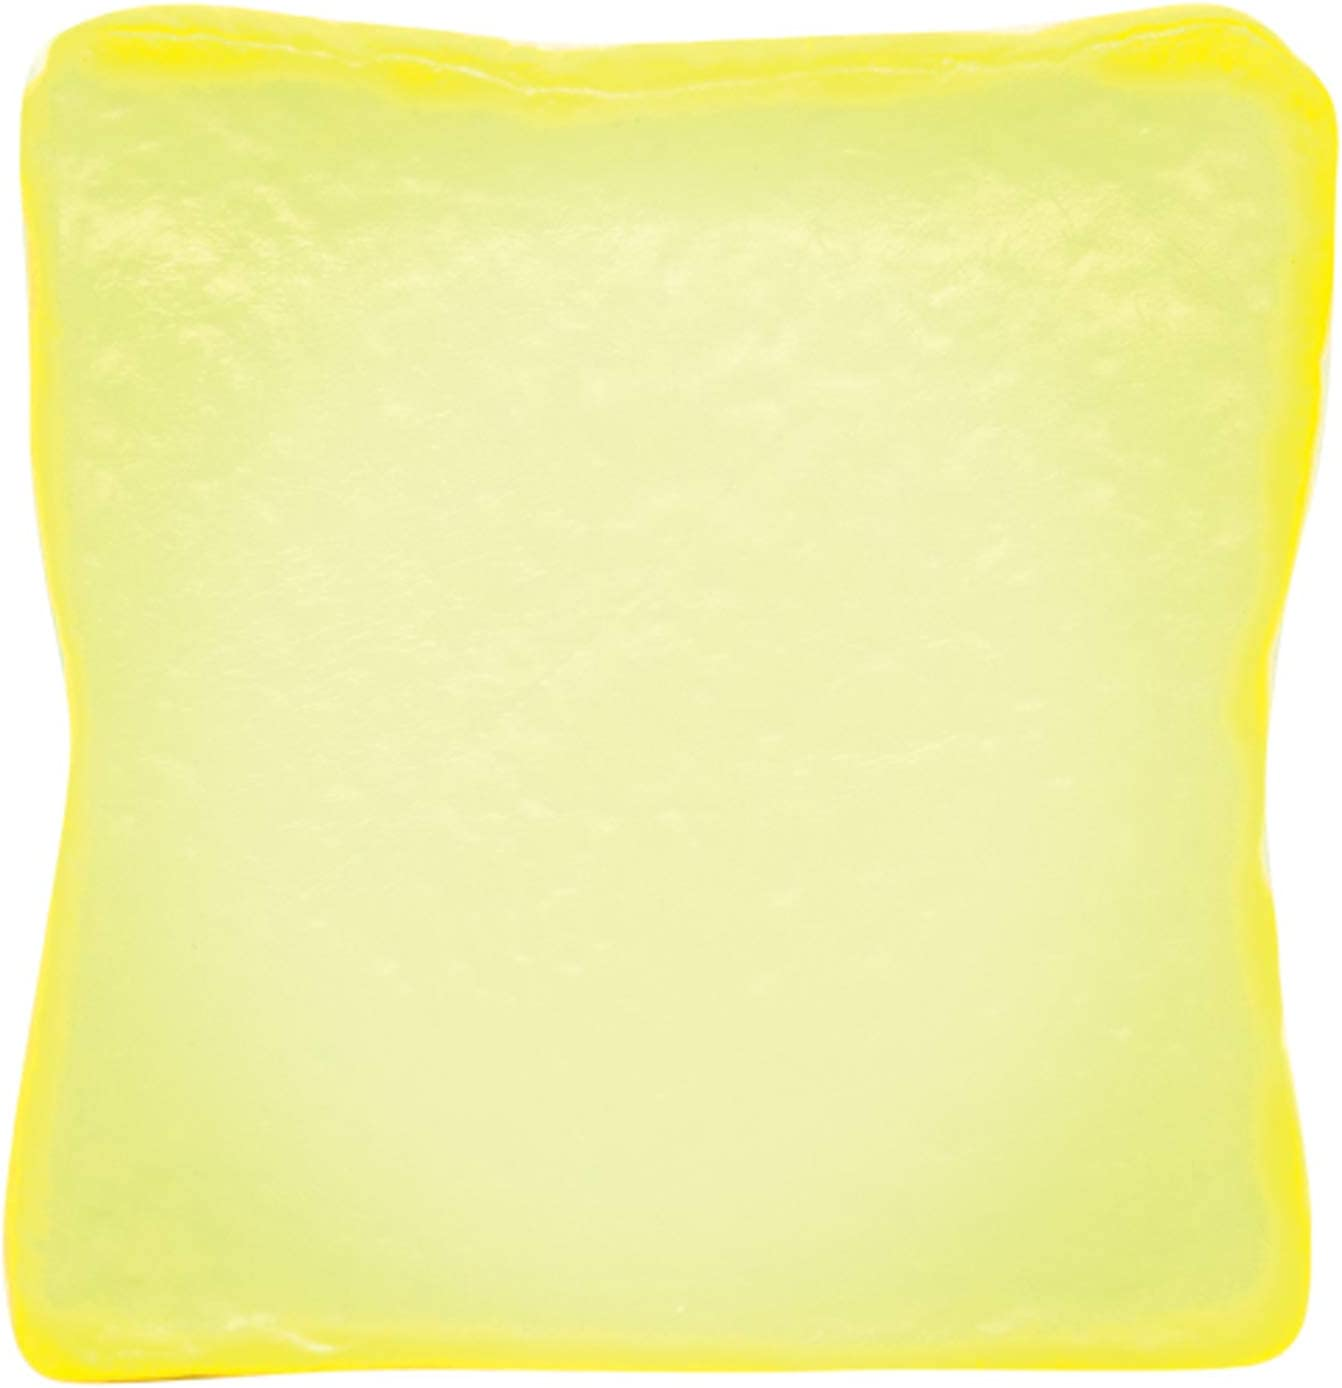 iBloom Aoyama Tokyo Milk Toast Realistic Bread Slow Rising Squishy Toy (Melon Scented, Green, 5.1 Inch) [Kawaii Squishies for Party Favors, Stress Balls, Birthday Gifts for Kids, Girls, Boys]